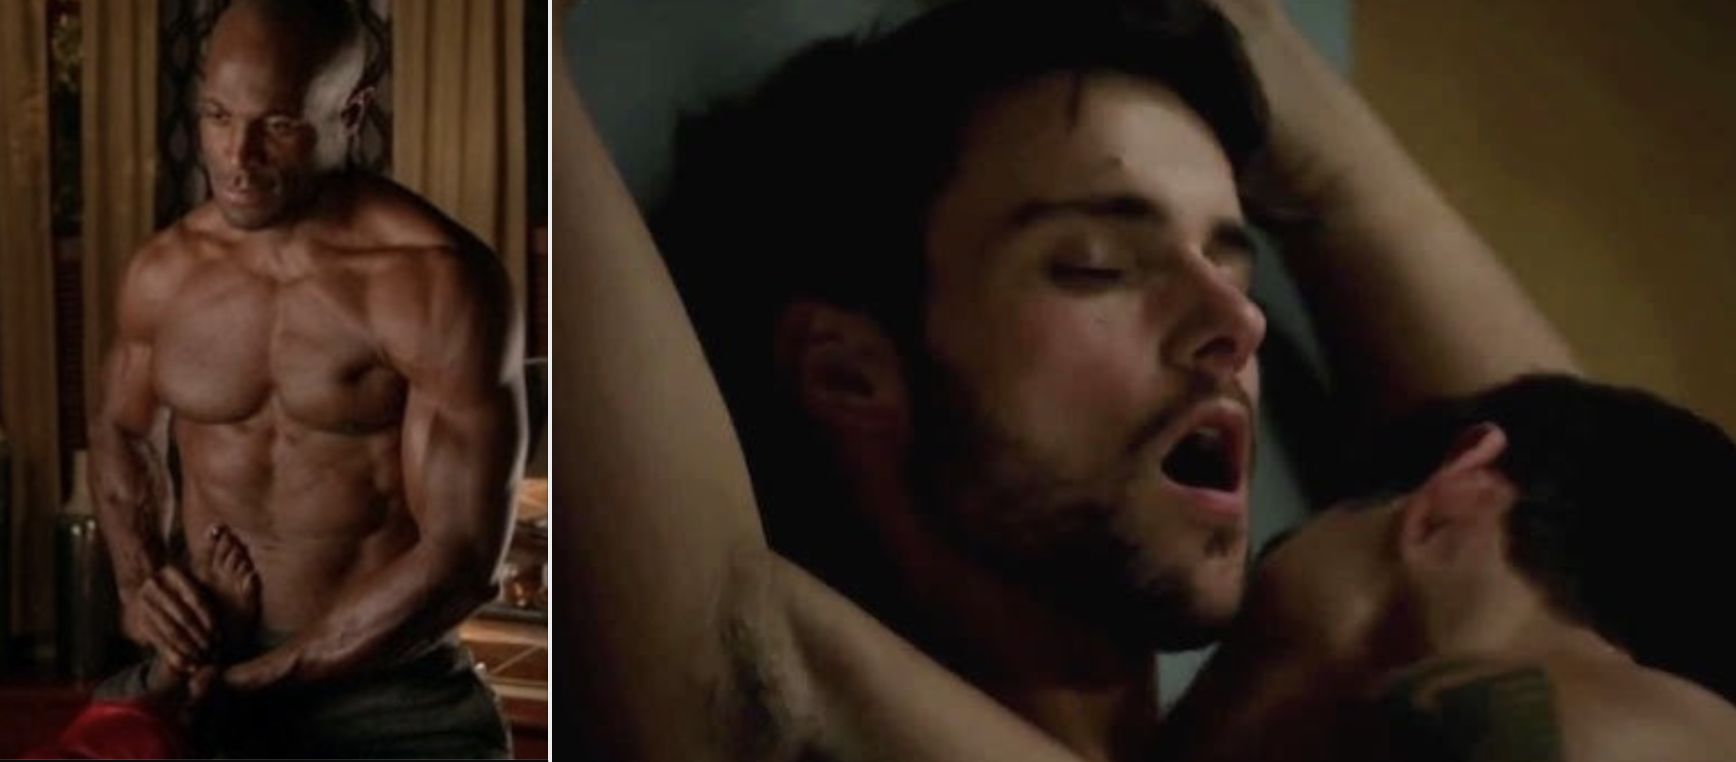 """Side-by-sides of a shirtless Nate in """"How to Get Away with Murder"""" and Connor kissing another man"""